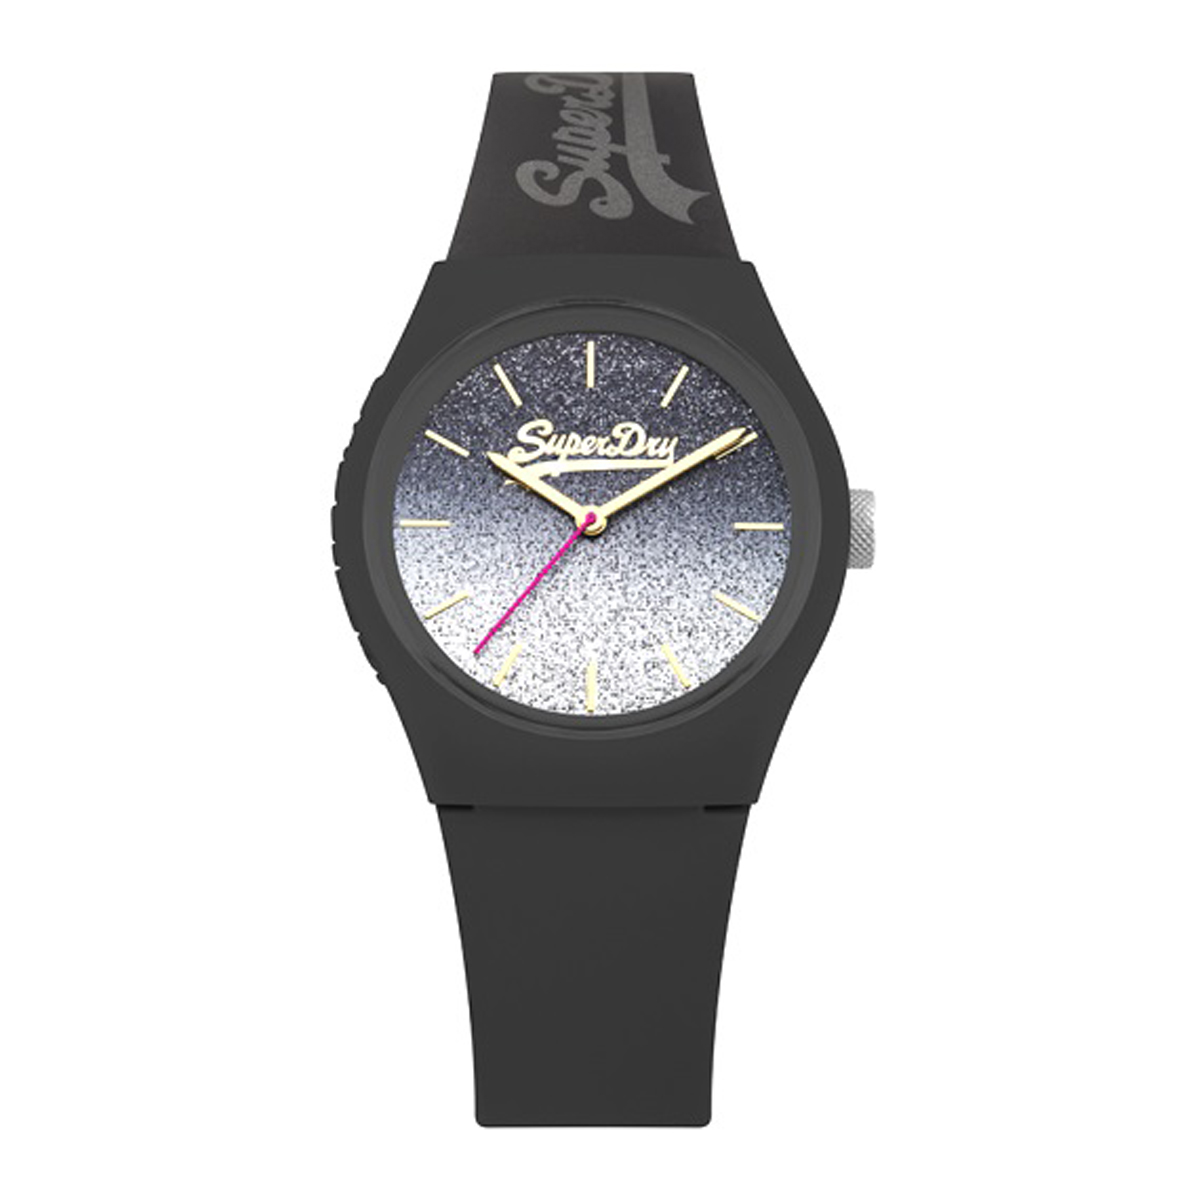 Montre silicone \'Superdry\' noir paillettes - 38 mm - [P9930]